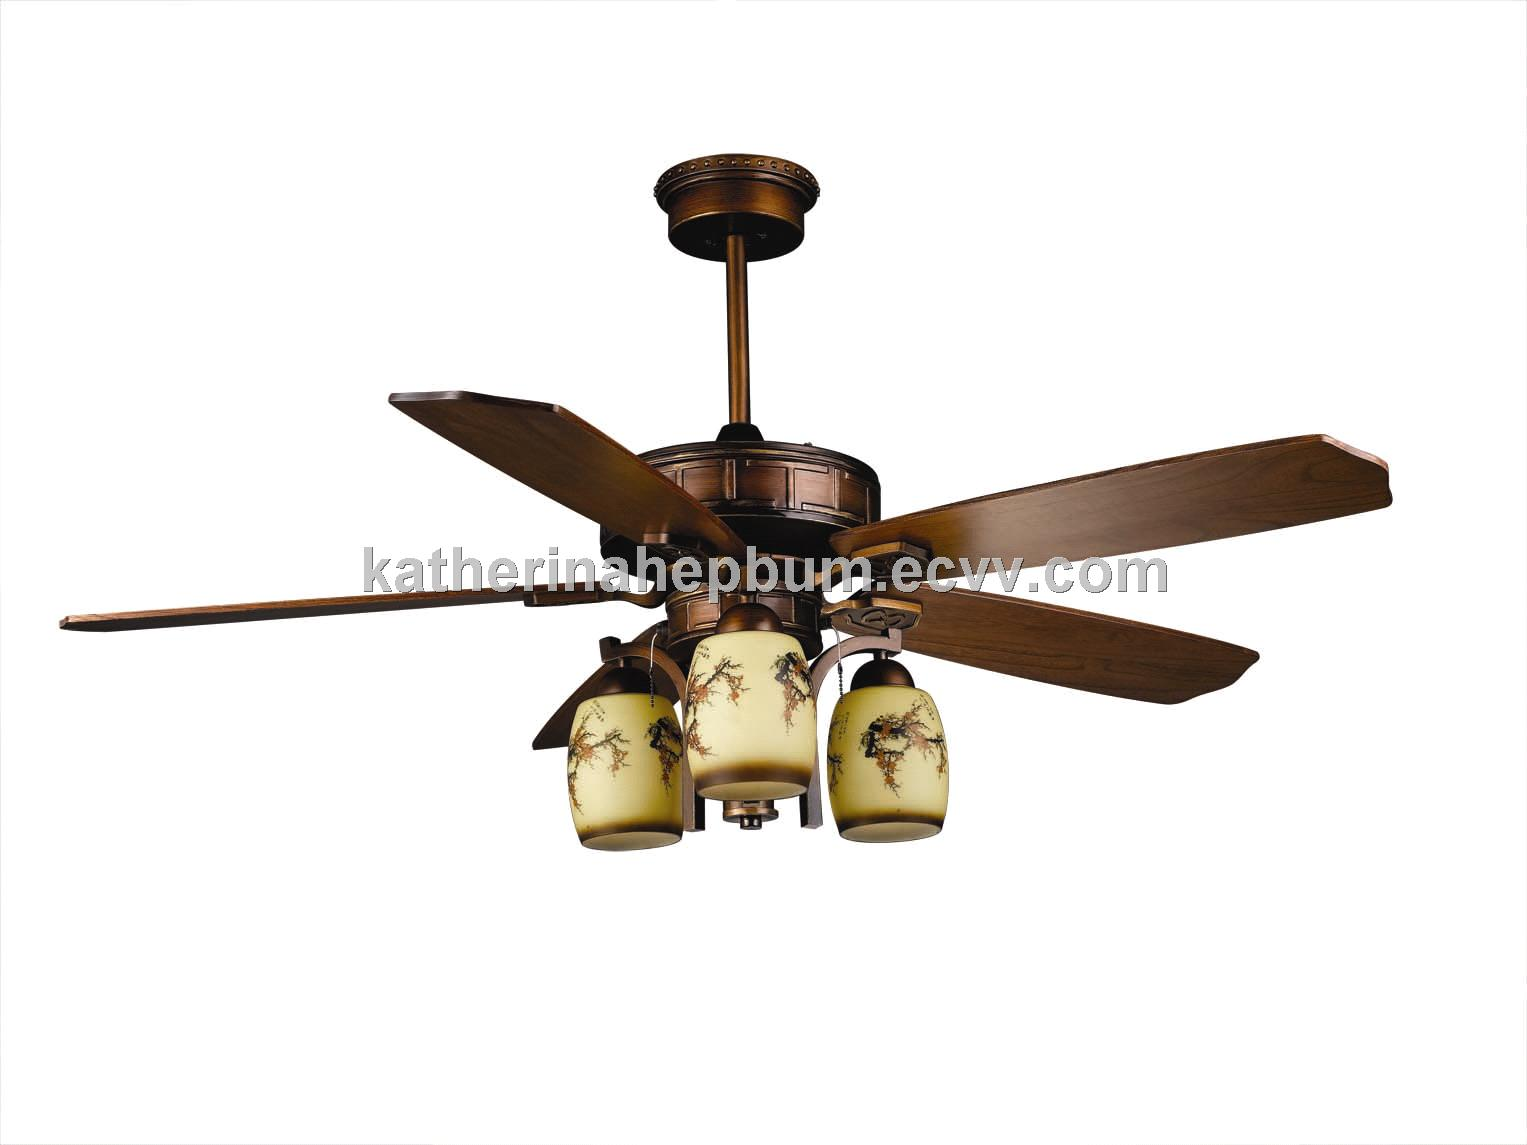 52 inch 2013 new design chinese antique ceiling fan